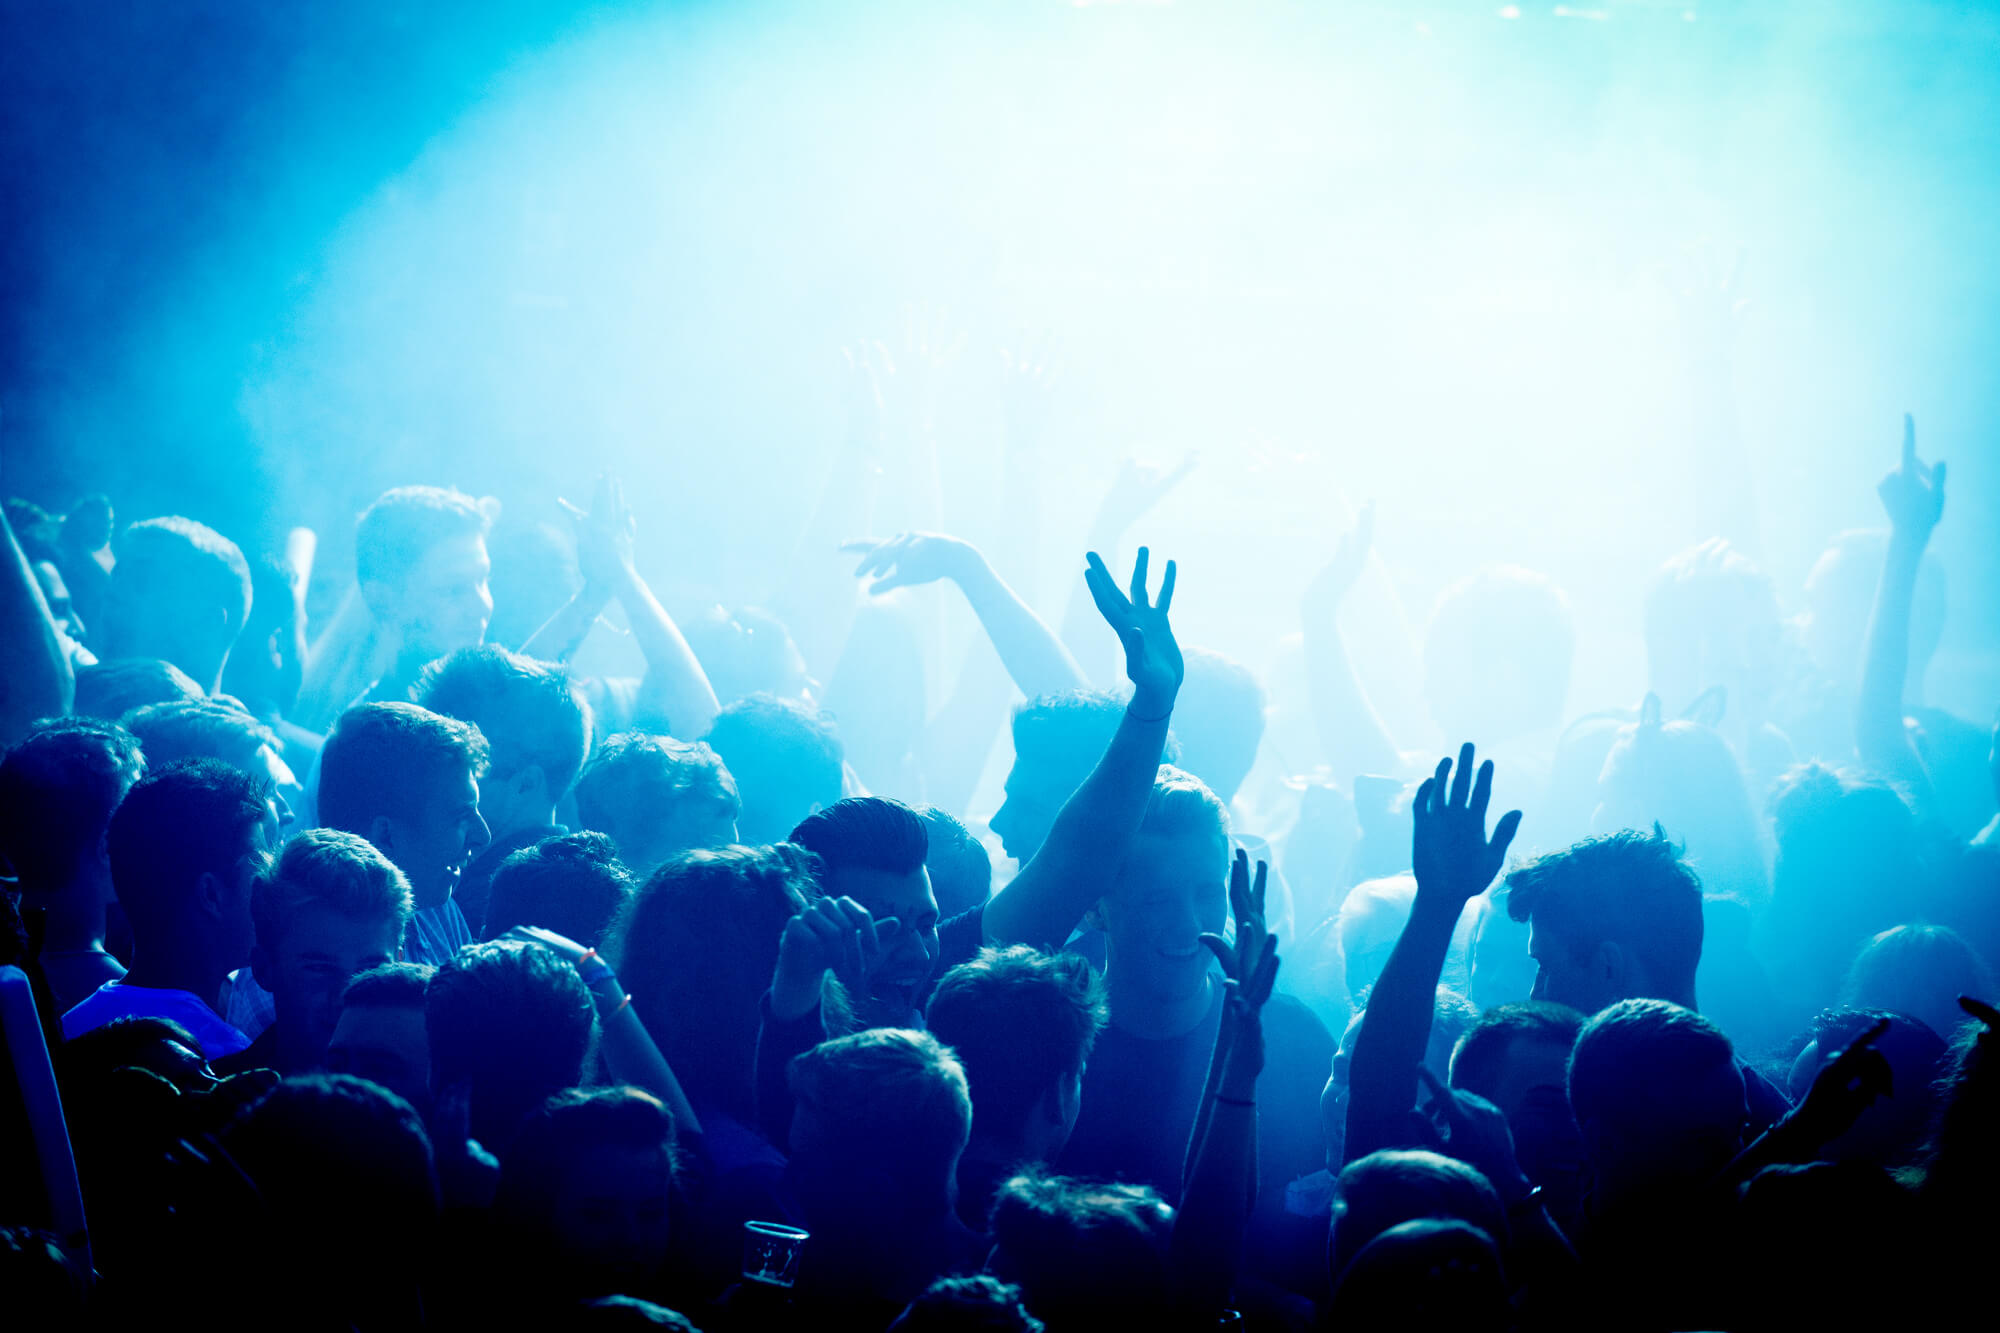 Freshers' party. People holding their hands up in the air under blue lighting.